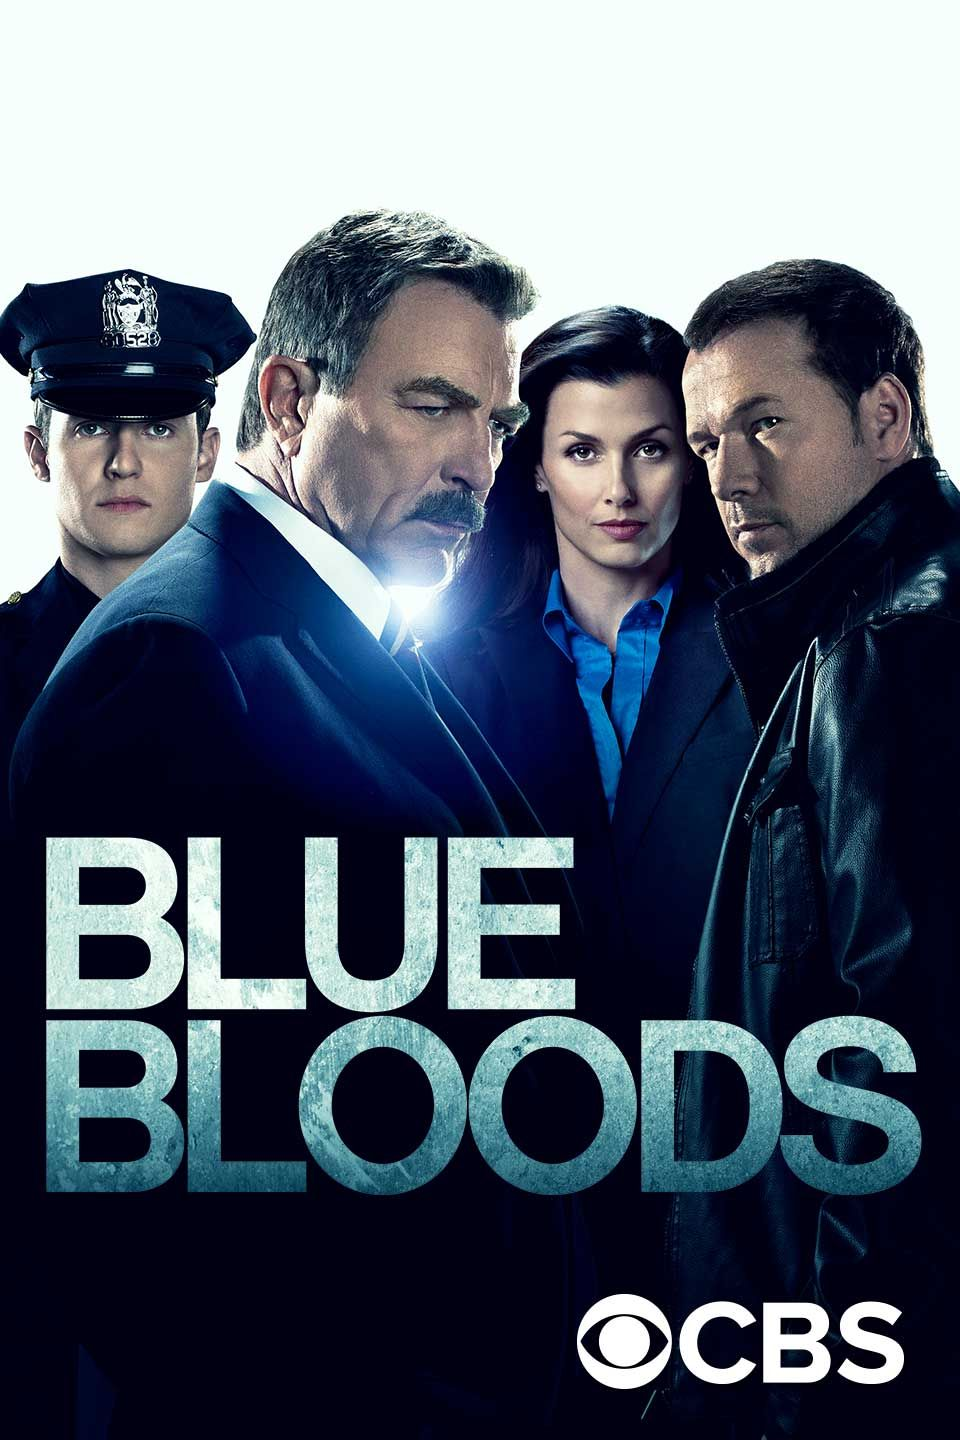 Blue Bloods Season 8 Episode 17 (S08E17) | Ahh My Forties